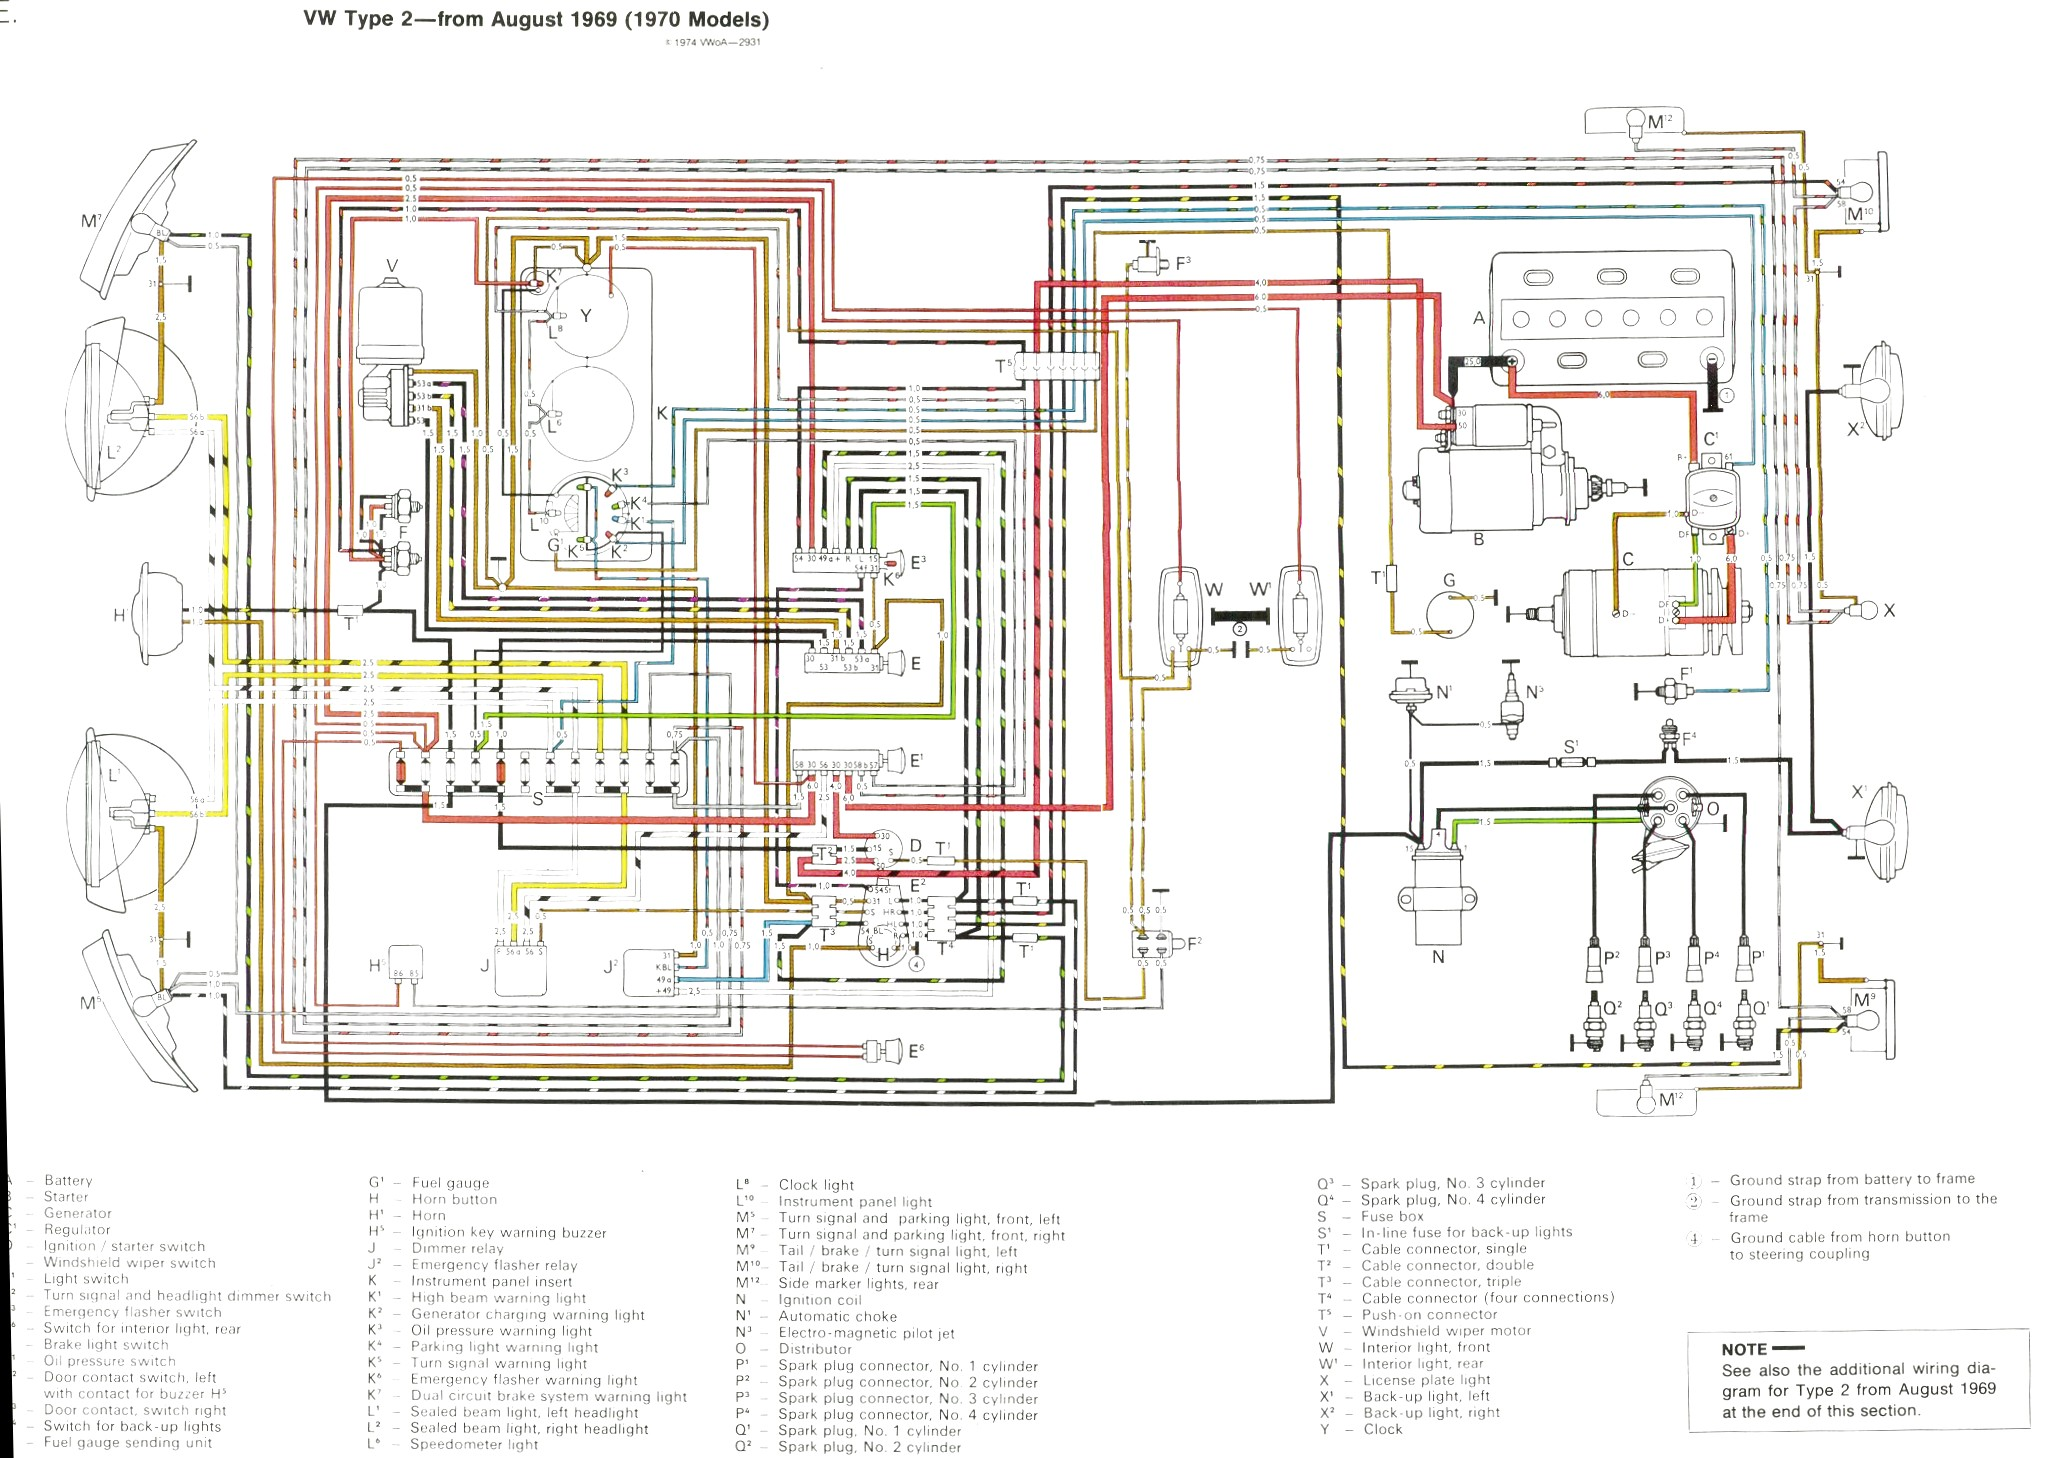 bus 69 70 vintagebus com vw bus (and other) wiring diagrams Basic Electrical Wiring Diagrams at bayanpartner.co